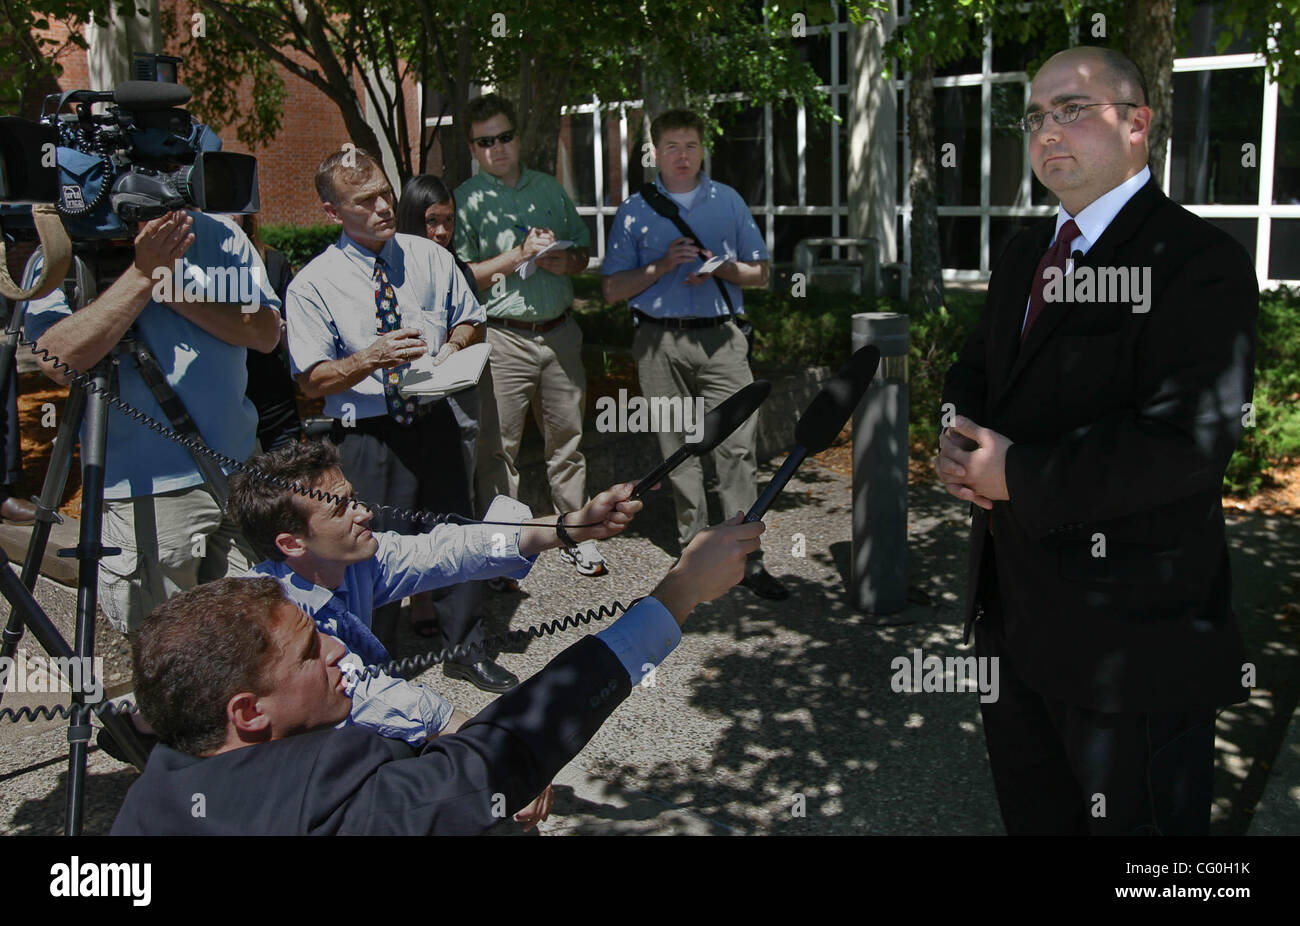 Stillwater/June 27, 2007/2:50PM.Defense attorney Matthew Ludt discusses the first-degree murder verdict given his - Stock Image